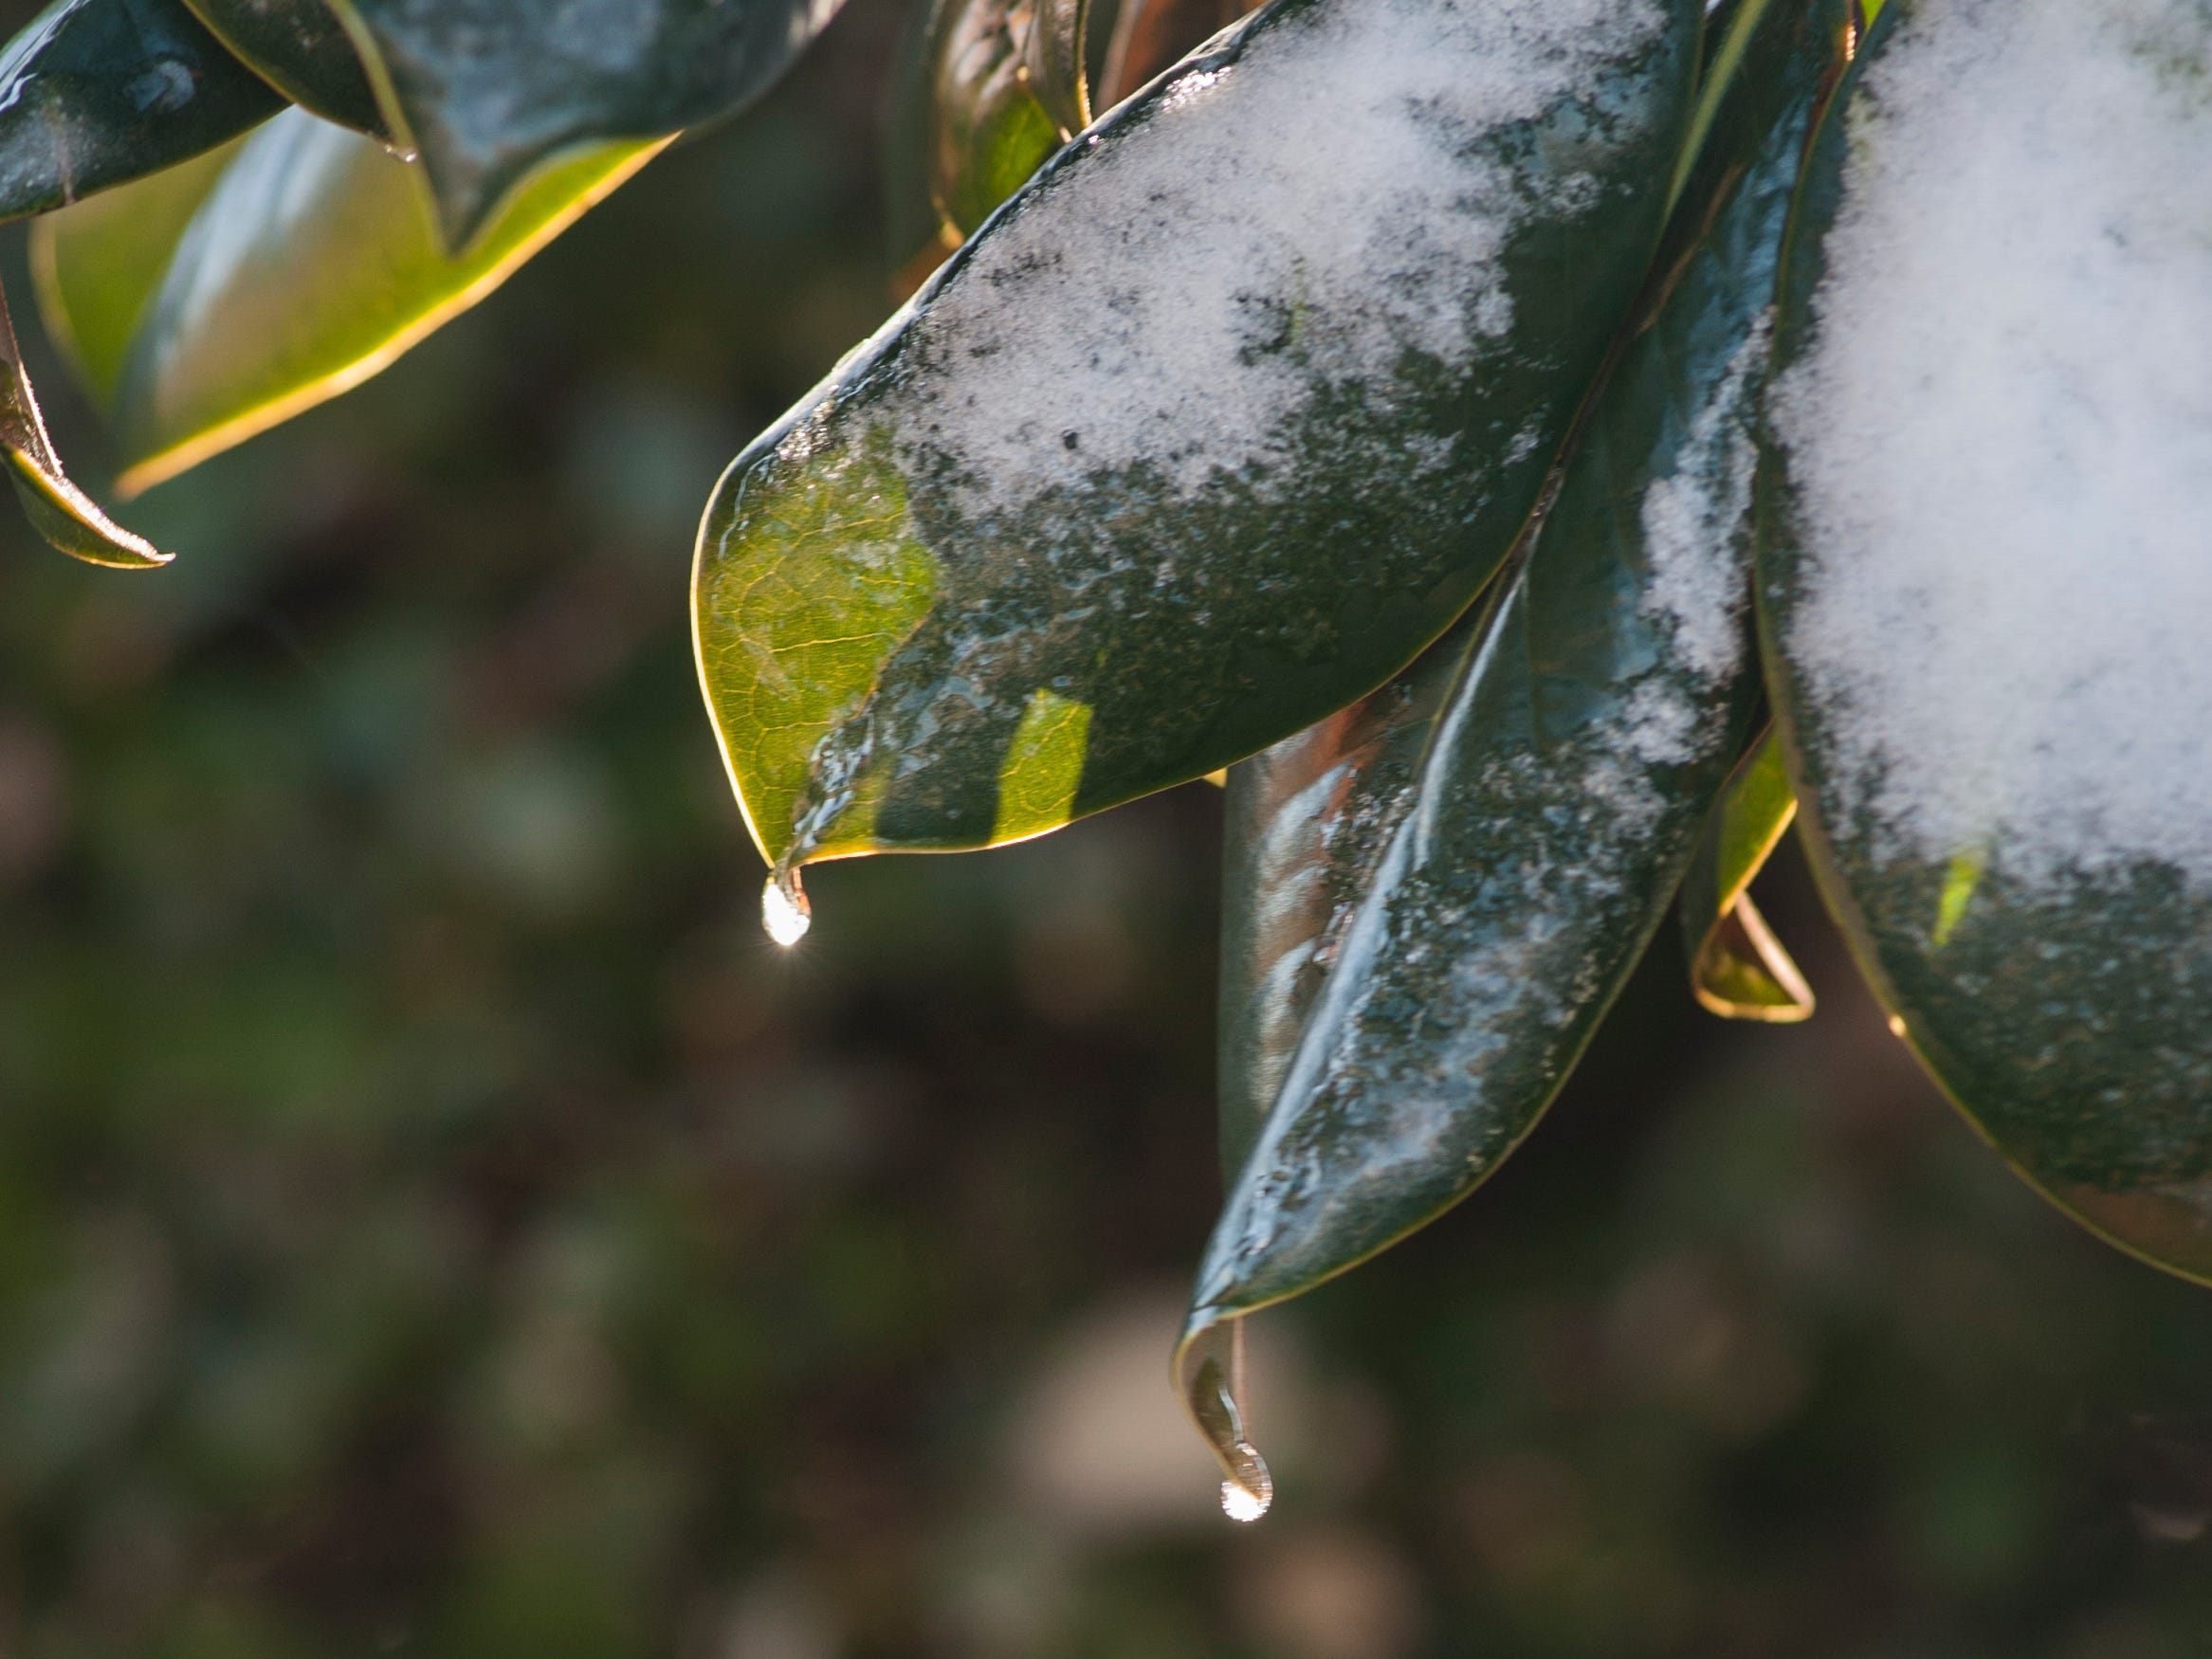 Icicle-tipped magnolia leaves await the warmth of the sun Jan. 29, 2019, after a cold front moved through state leaving the Jackson, Miss. metro area with freezing temperatures and less than an inch of snow.